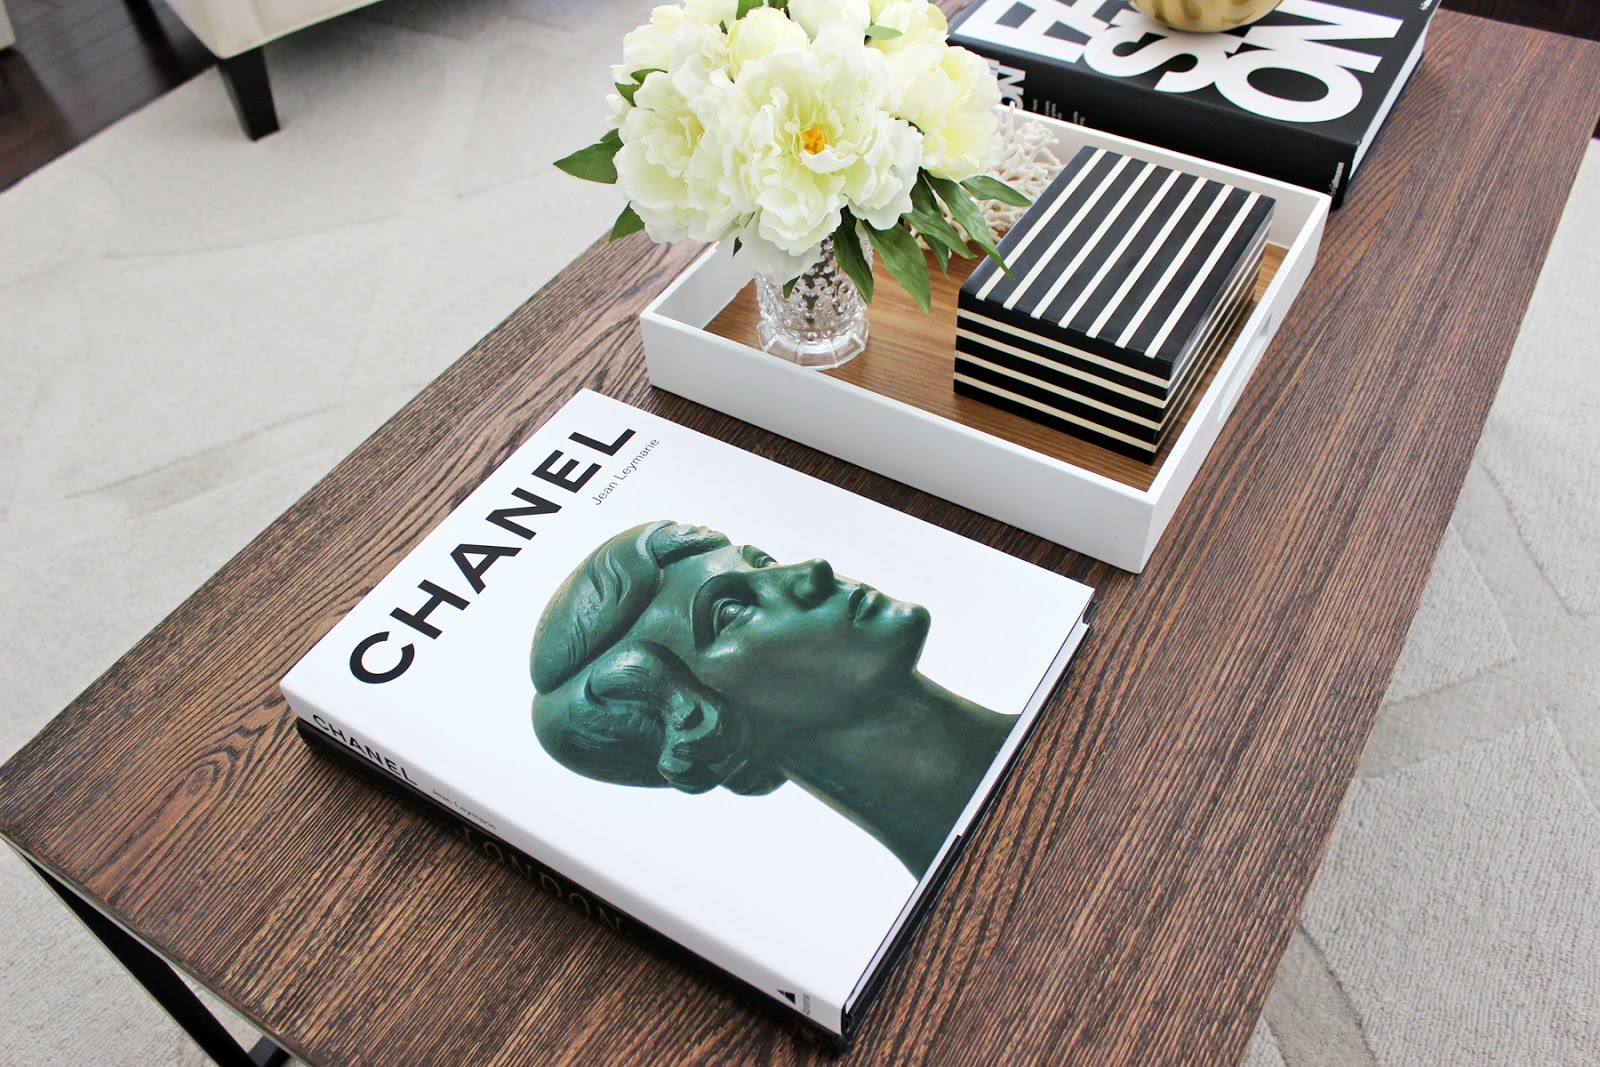 Chanel As Coffee Table Book